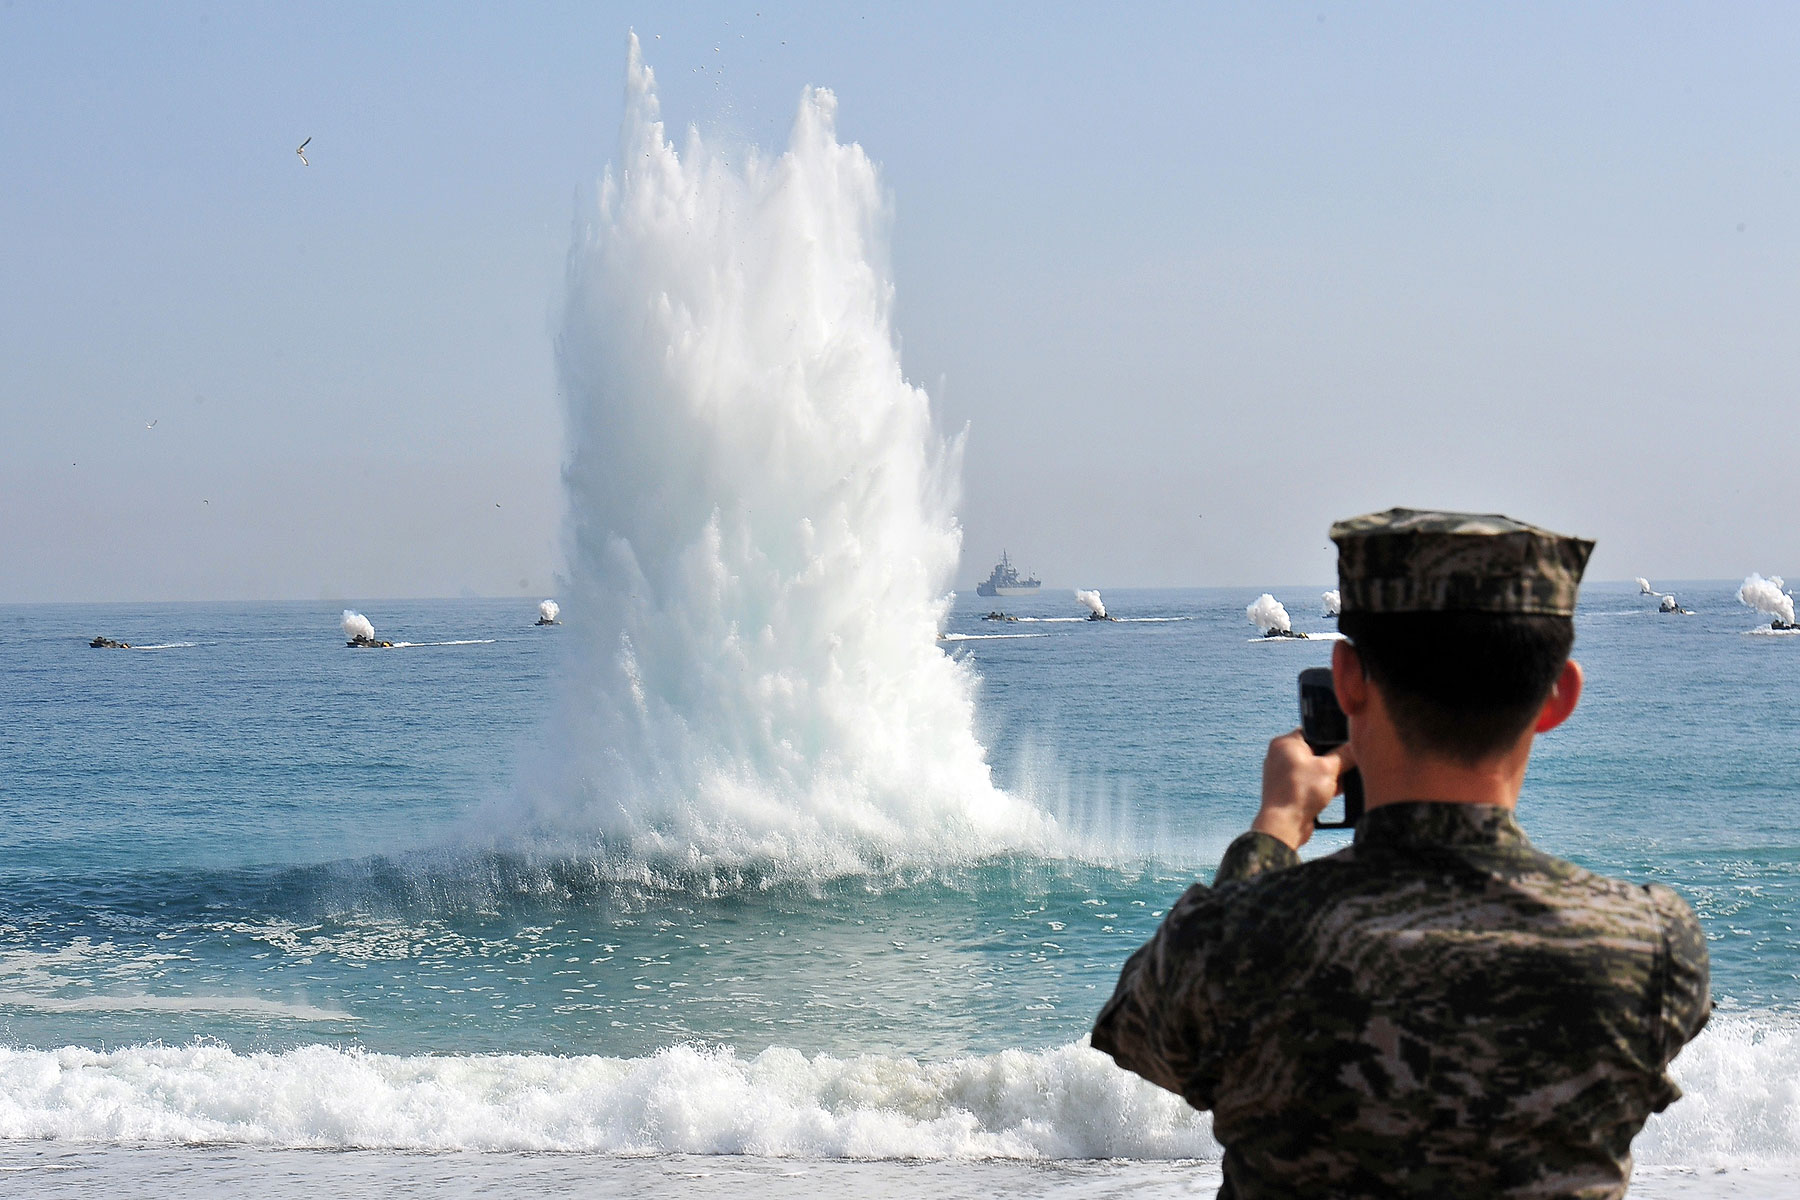 A South Korean Marine stands on a beach as amphibious assault vehicles (in background) approach the seashore during a joint landing operation by US and South Korean Marines in Pohang, 270 kms southeast of Seoul, on March 31, 2014